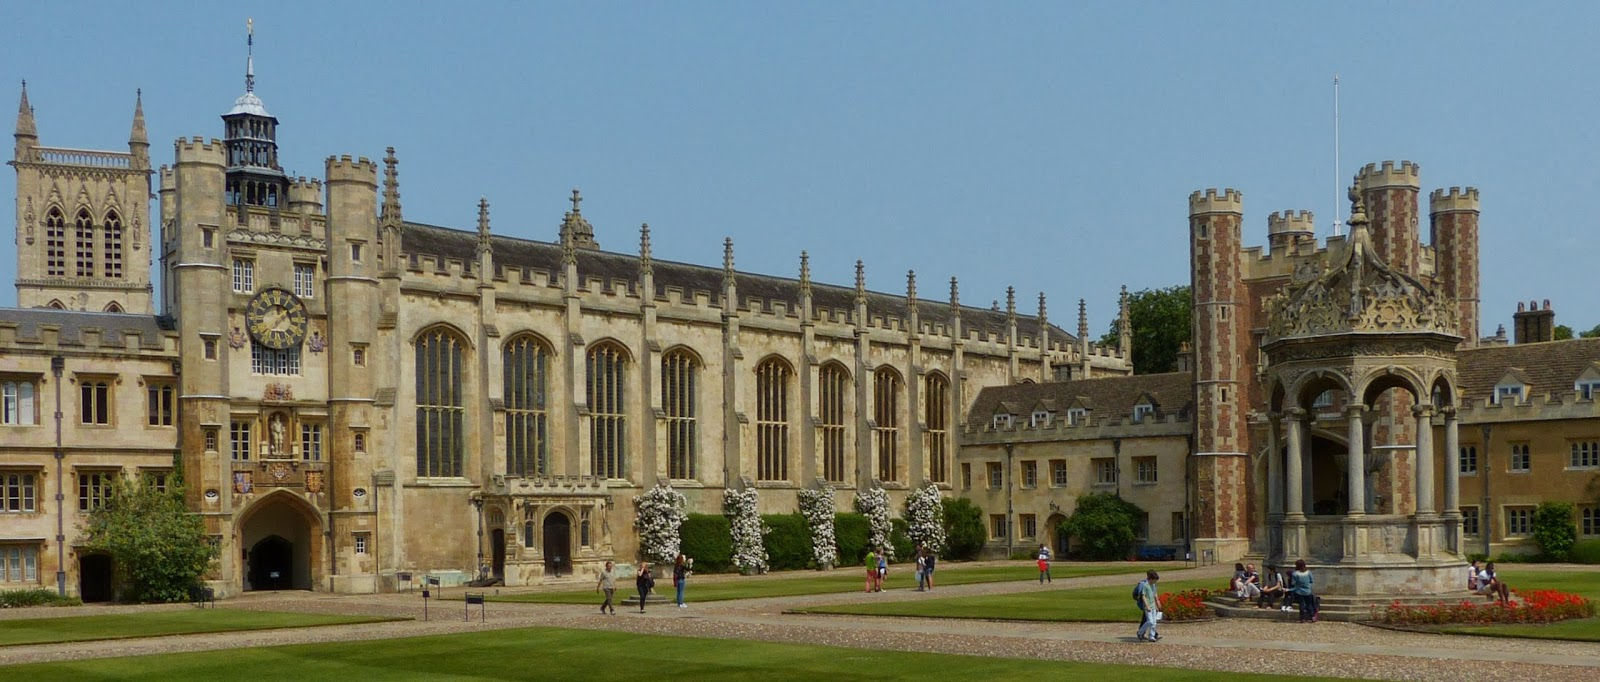 trinity college cambridge history essay Faculty of philosophy people teaching  trinity college  remco heesen has been awarded the emanuel miller prize by st john's college, cambridge, for his essay.